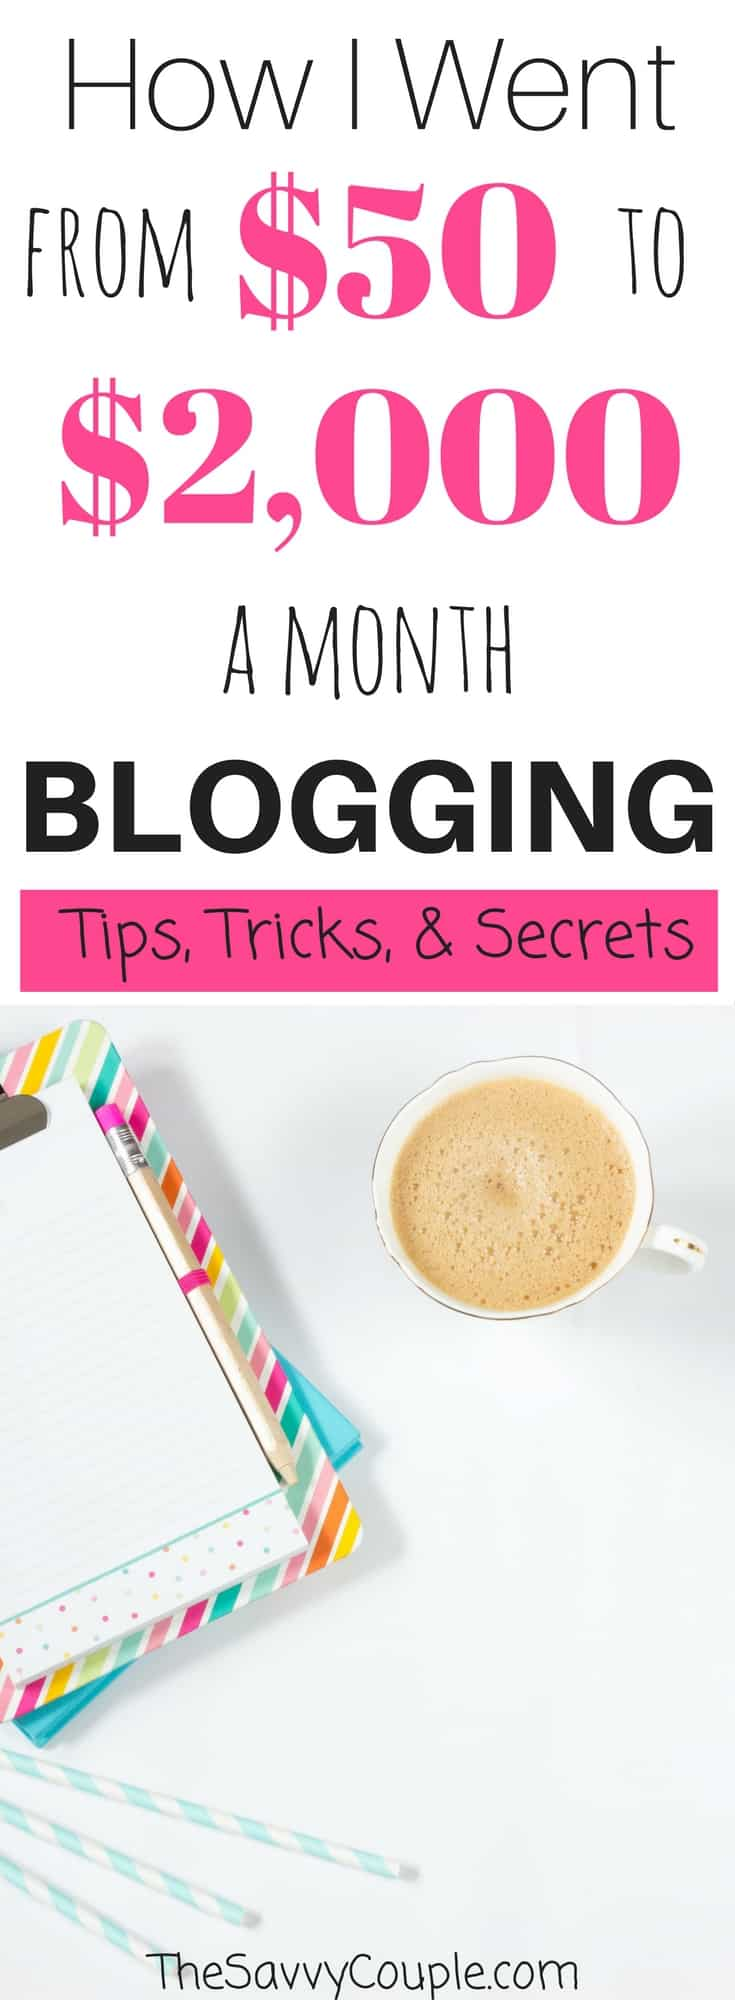 This is our first ever blog income report! We are so excited to share where we have taken our blog in the short amount of time I have been working on it full-time. Last month we made $1,928 from blogging. Learn our tips and tricks with our in depth monthly blogging income report review! How to start a blog | Make money from home | Blogging for beginners | Financial freedom | Entrepreneur | side hustle | online income